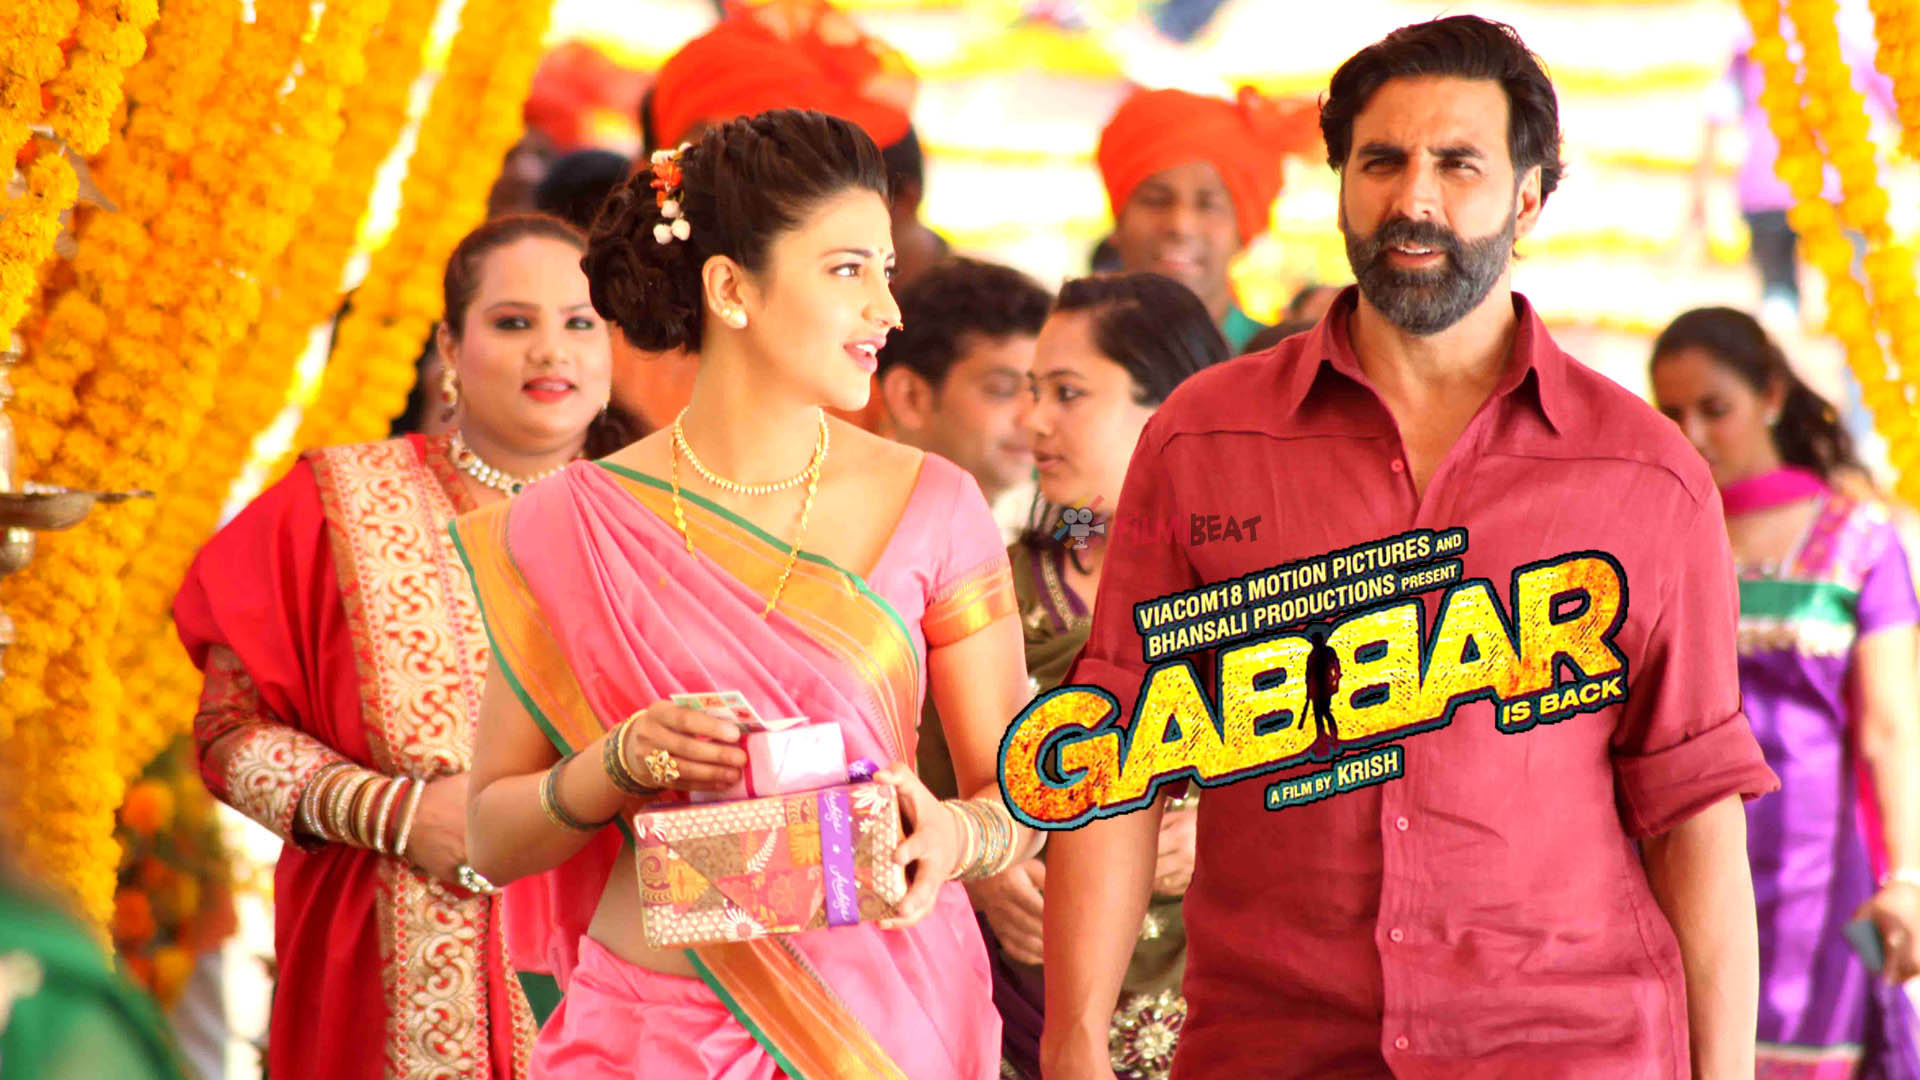 7 Akshay Kumar Movies That Will Make You Proud - Gabbar Is Back